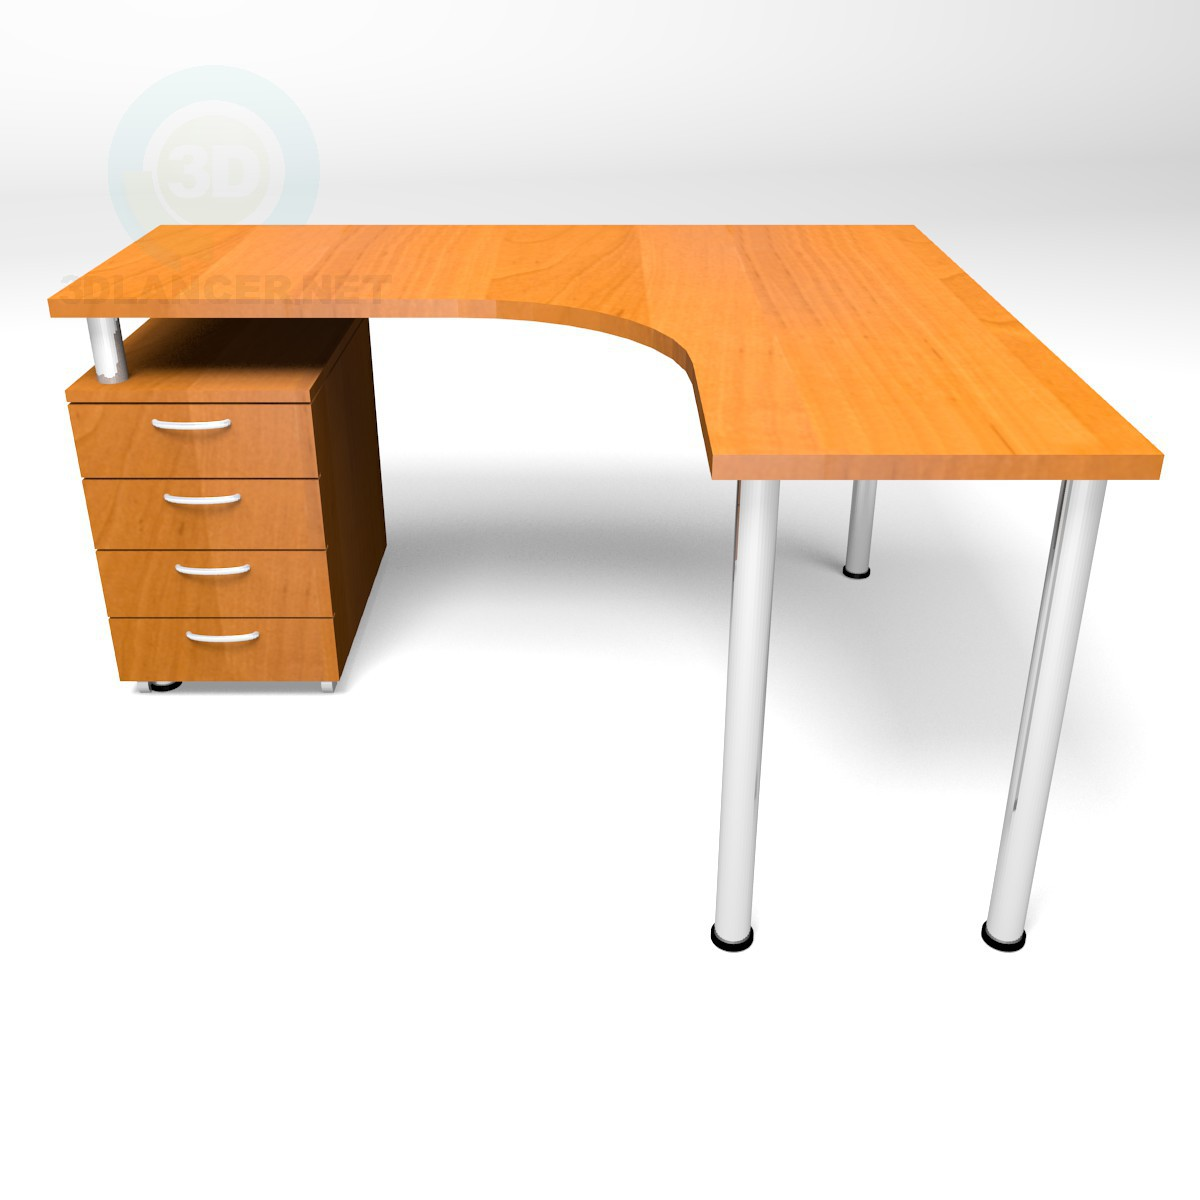 3d model Angular table 750-1500-1300 - preview